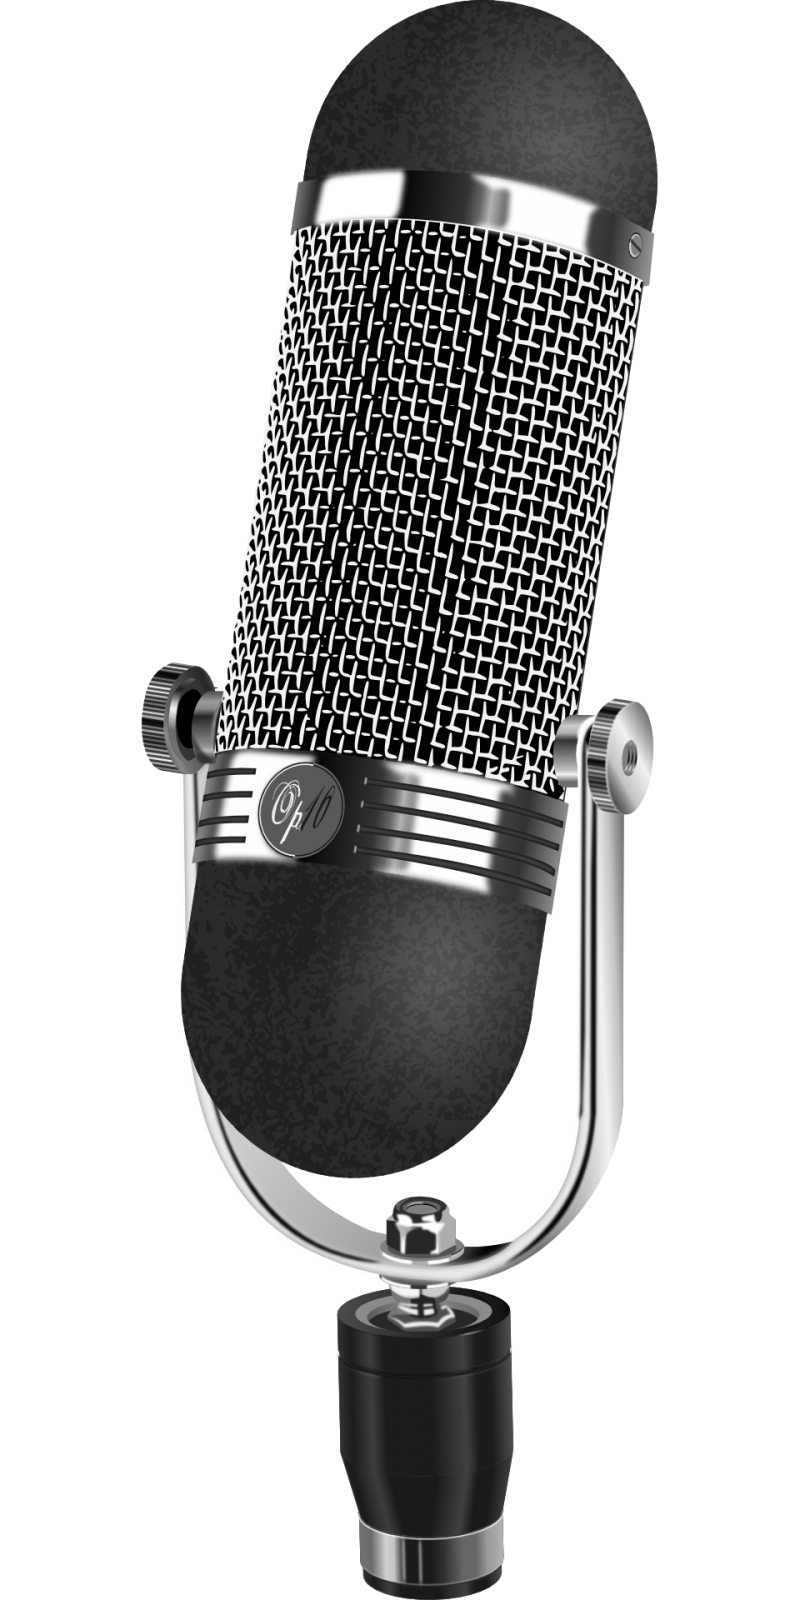 HD High Definition Wallpaper Microphone images, Audio